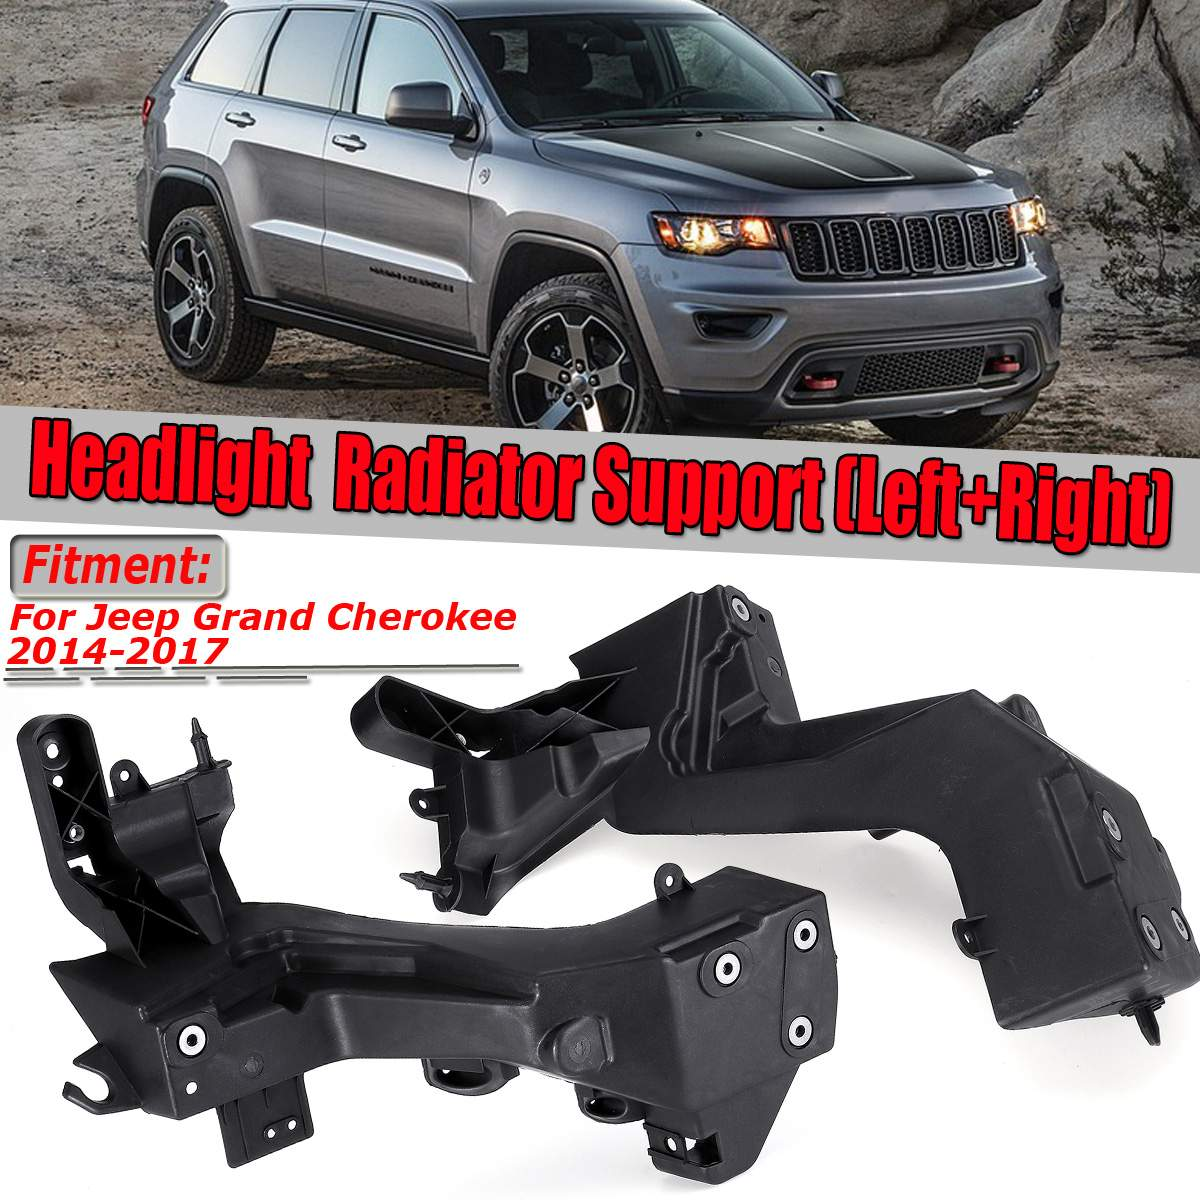 68223399AA Left Headlight Mounting Bracket For Jeep Grand Cherokee 2014-2017